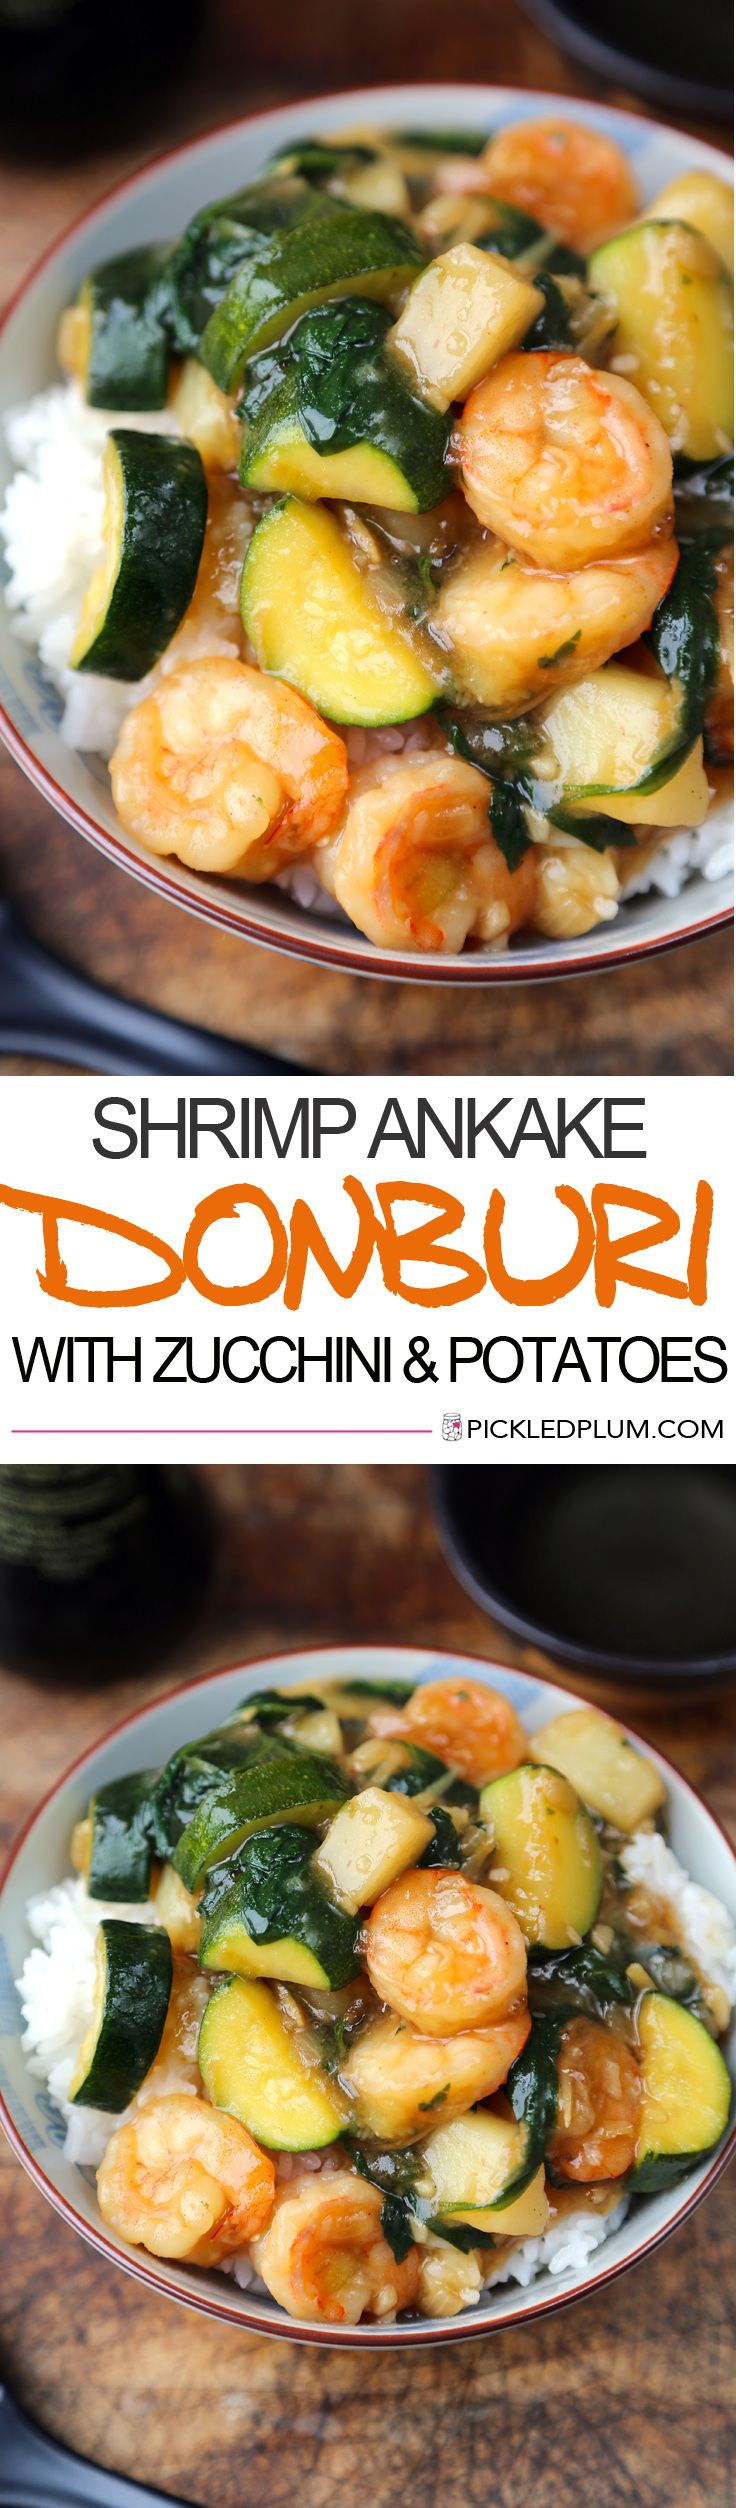 Shrimp Ankake Donburi (with zucchini and potatoes) Japanese Recipe -http://www.pickledplum.com/shrimp-ankake-donburi-recipe/